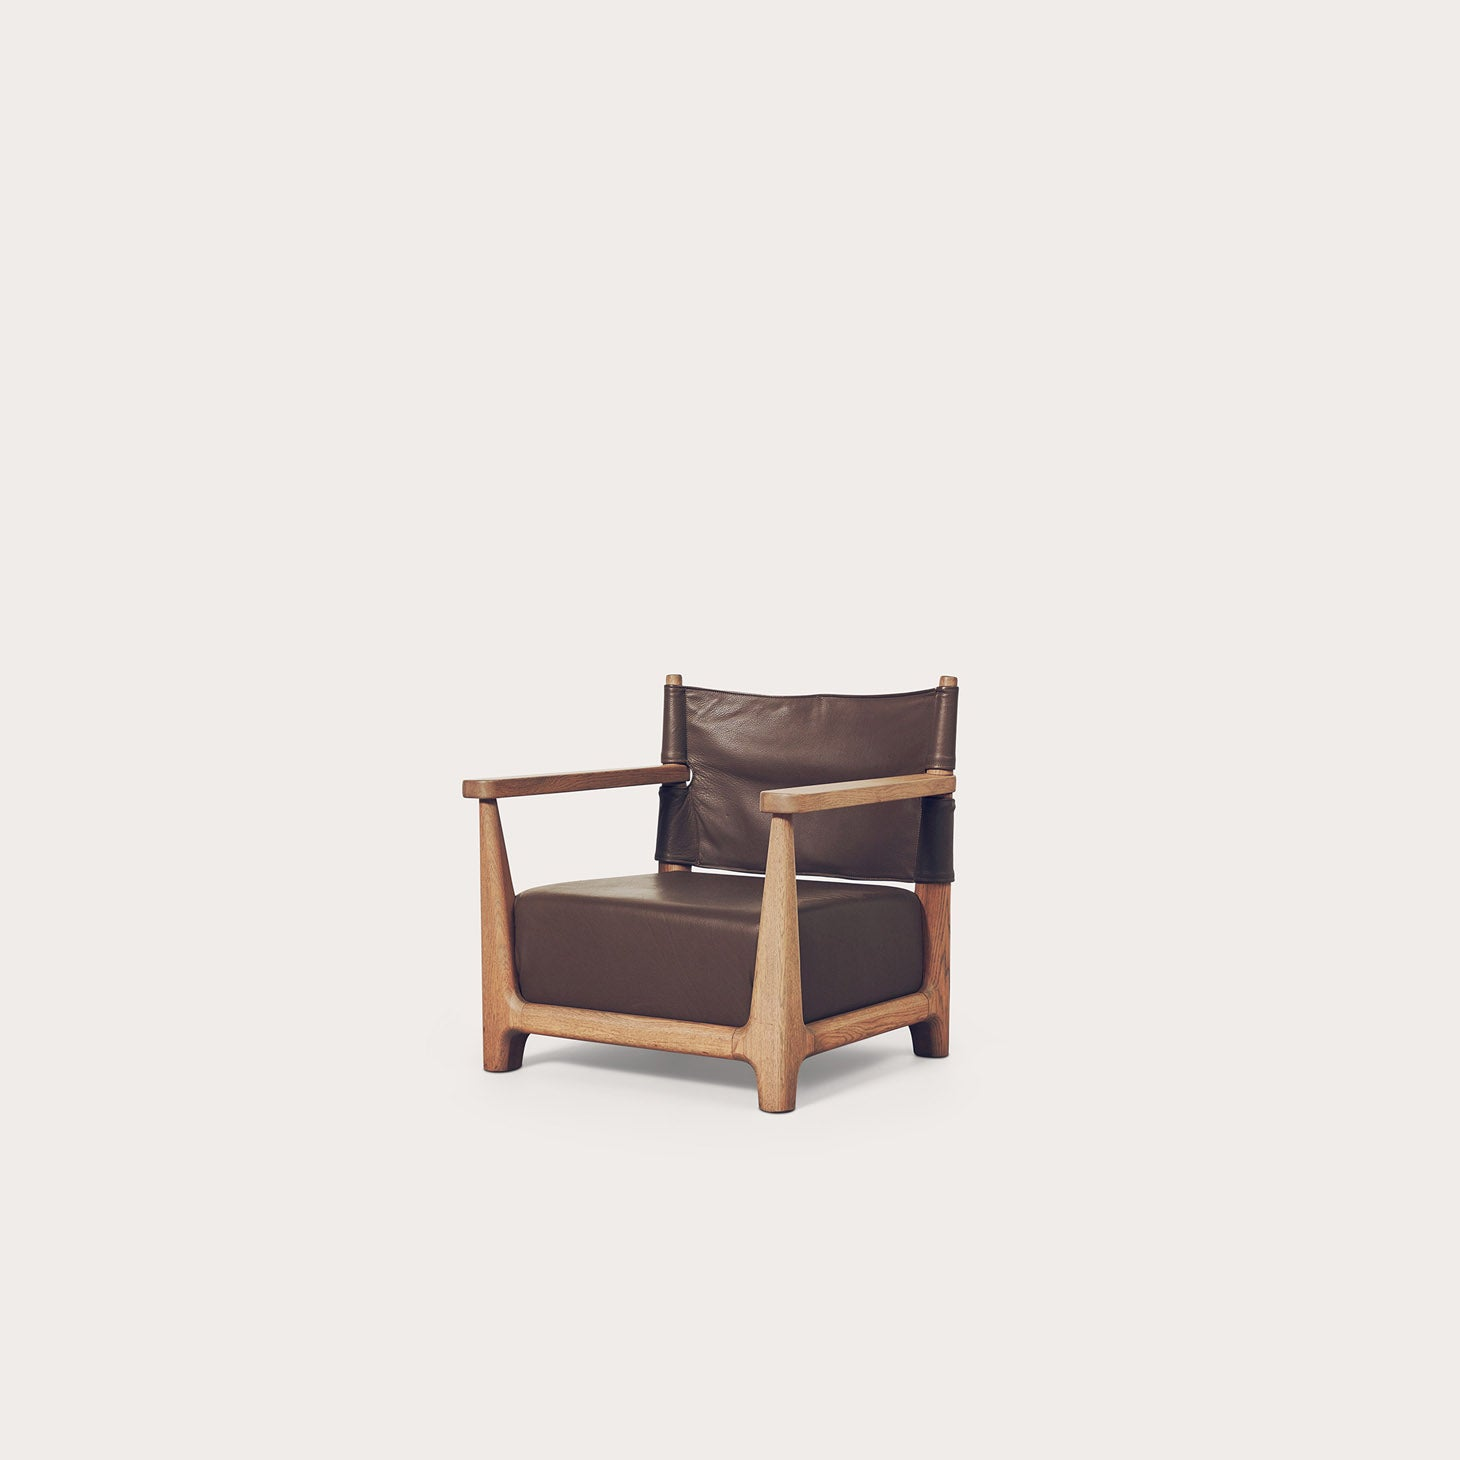 ABI Seating Christophe Delcourt Designer Furniture Sku: 416-240-10000